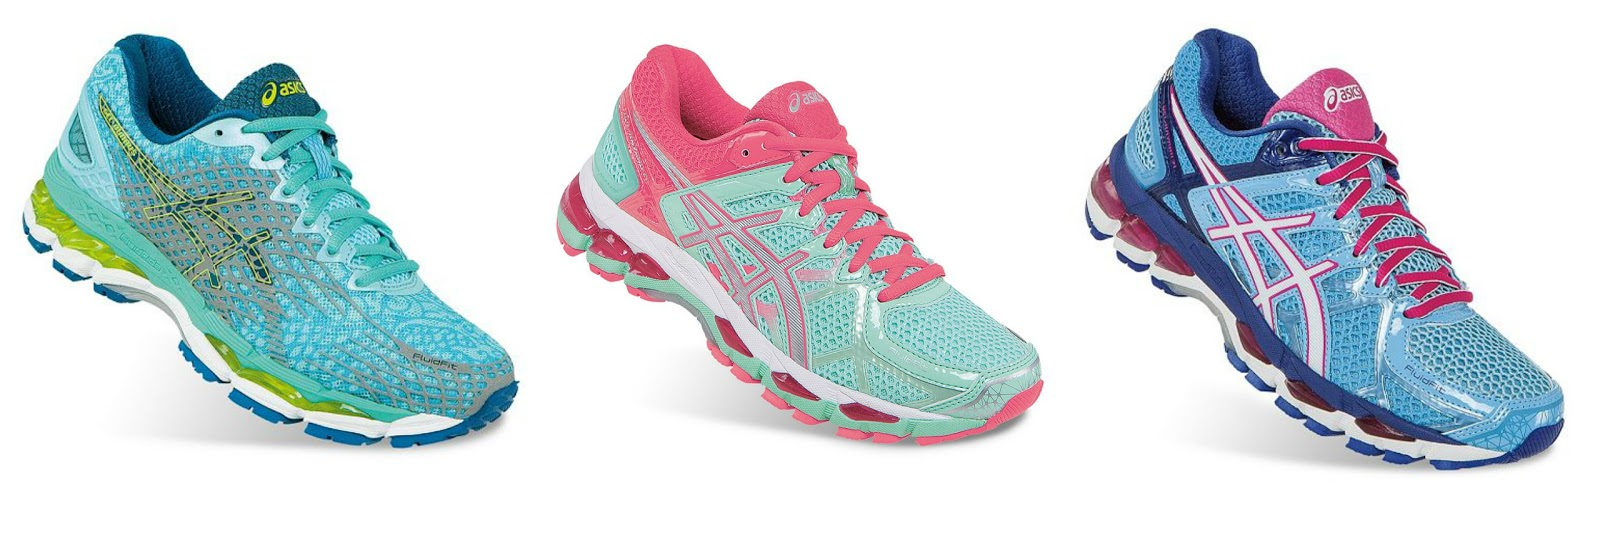 Nordstrom Asics Running Shoes